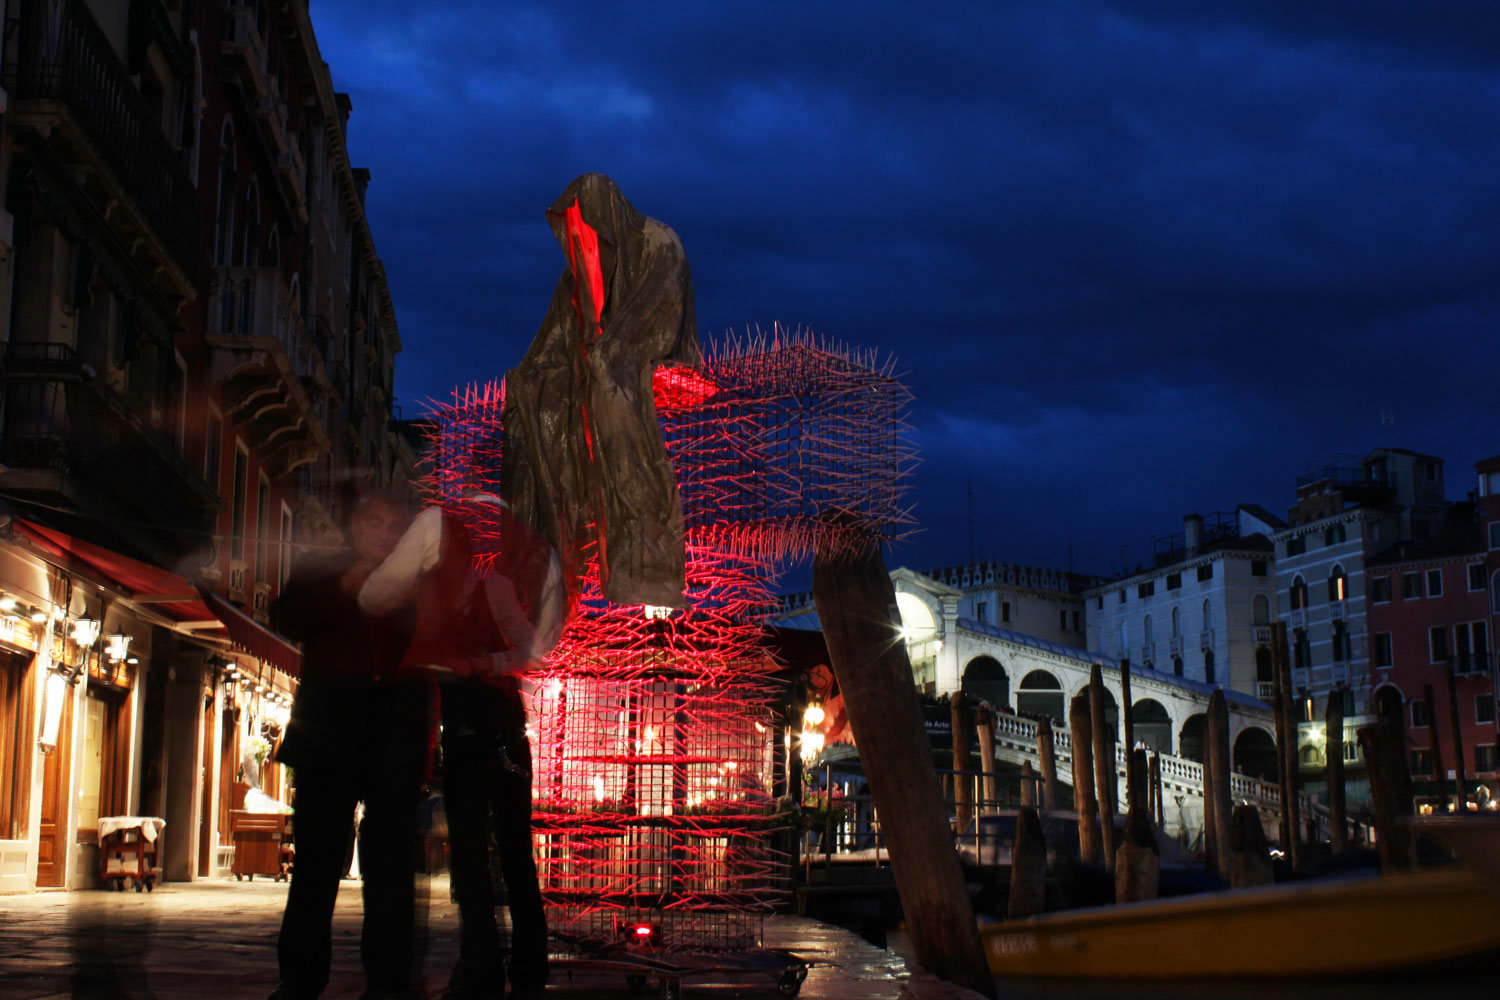 public-biennale-de-arte-venezia-italy-christoph-luckeneder-manfred-kielnhofer-t-guardians-sculpture-art-arts-2048